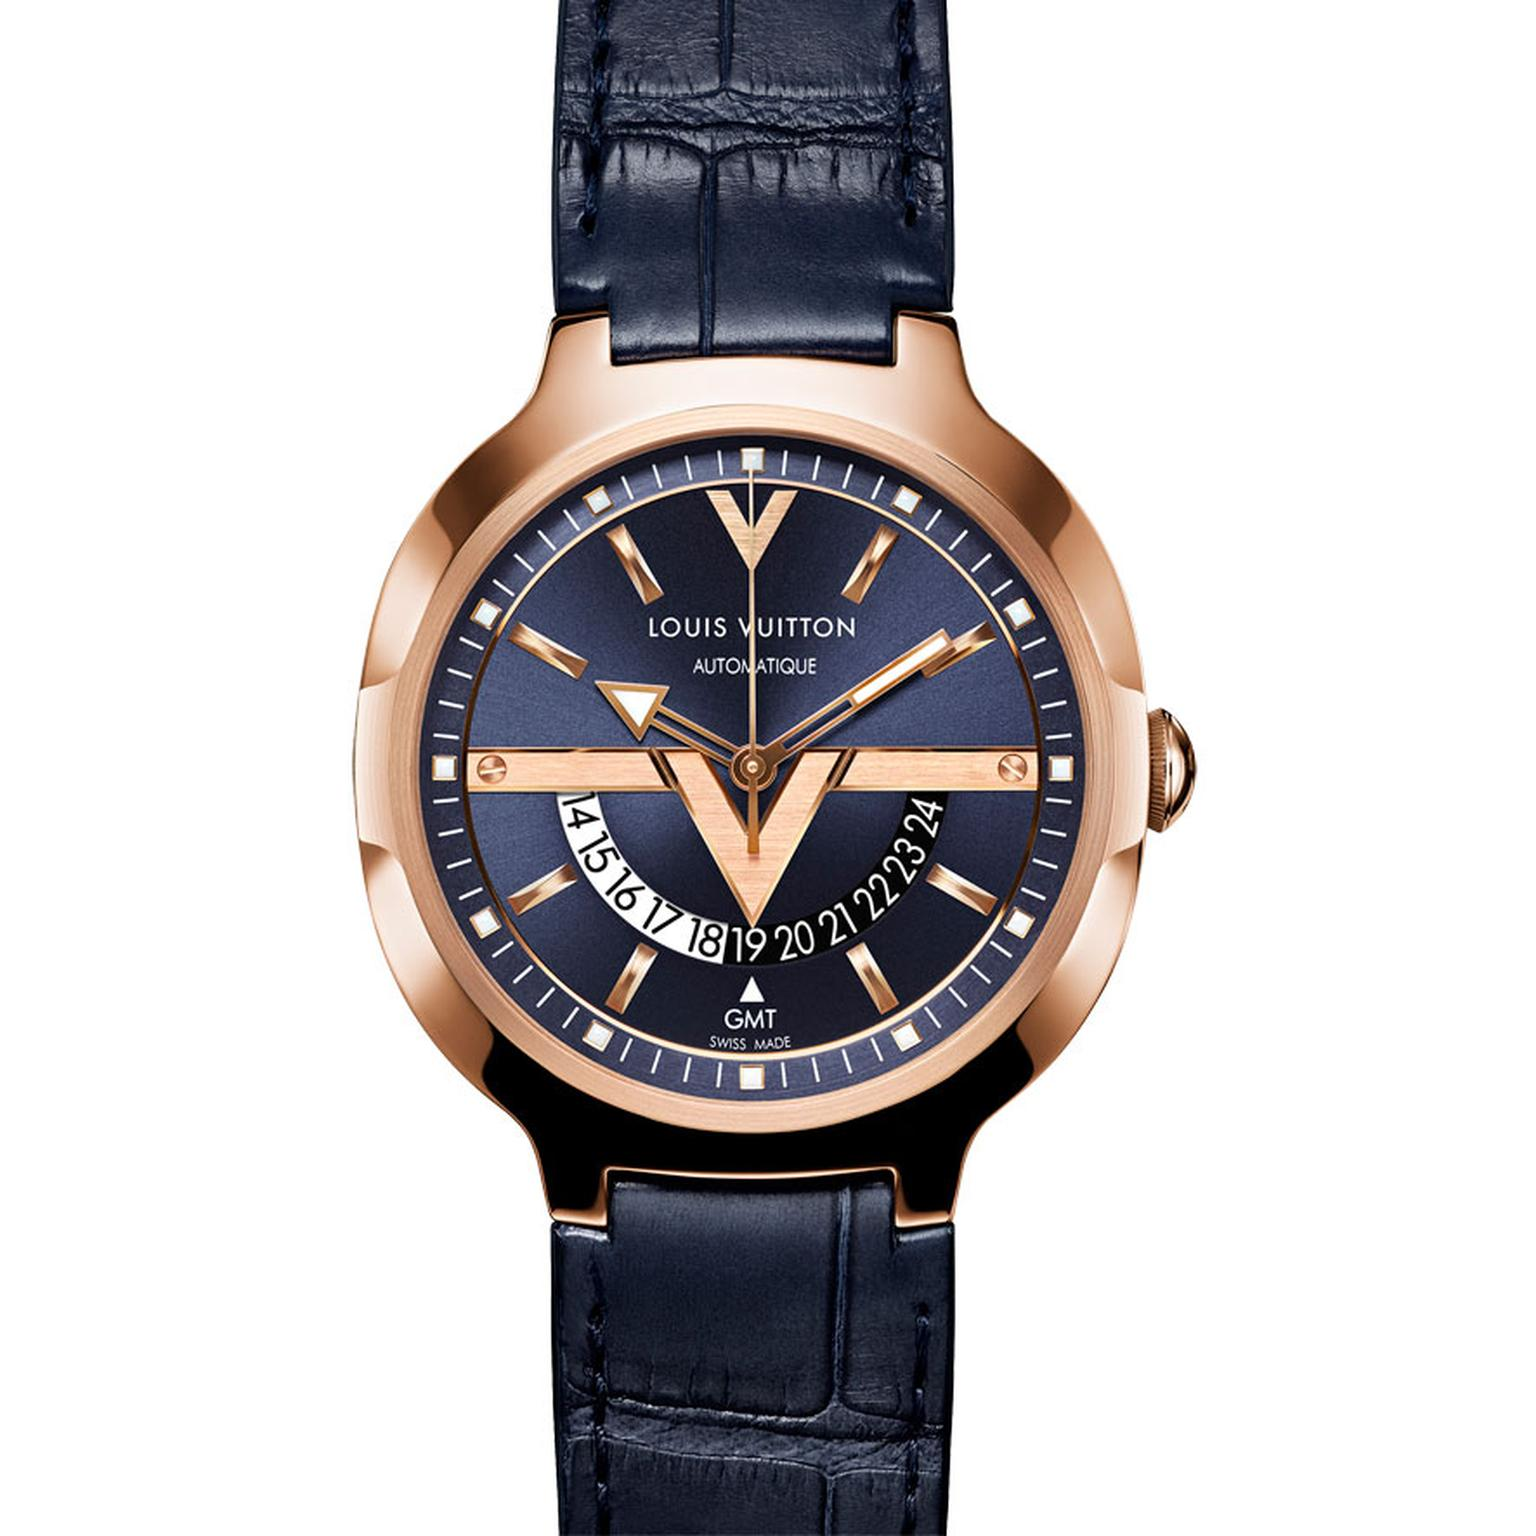 Louis Vuitton Voyager GMT watch in pink gold